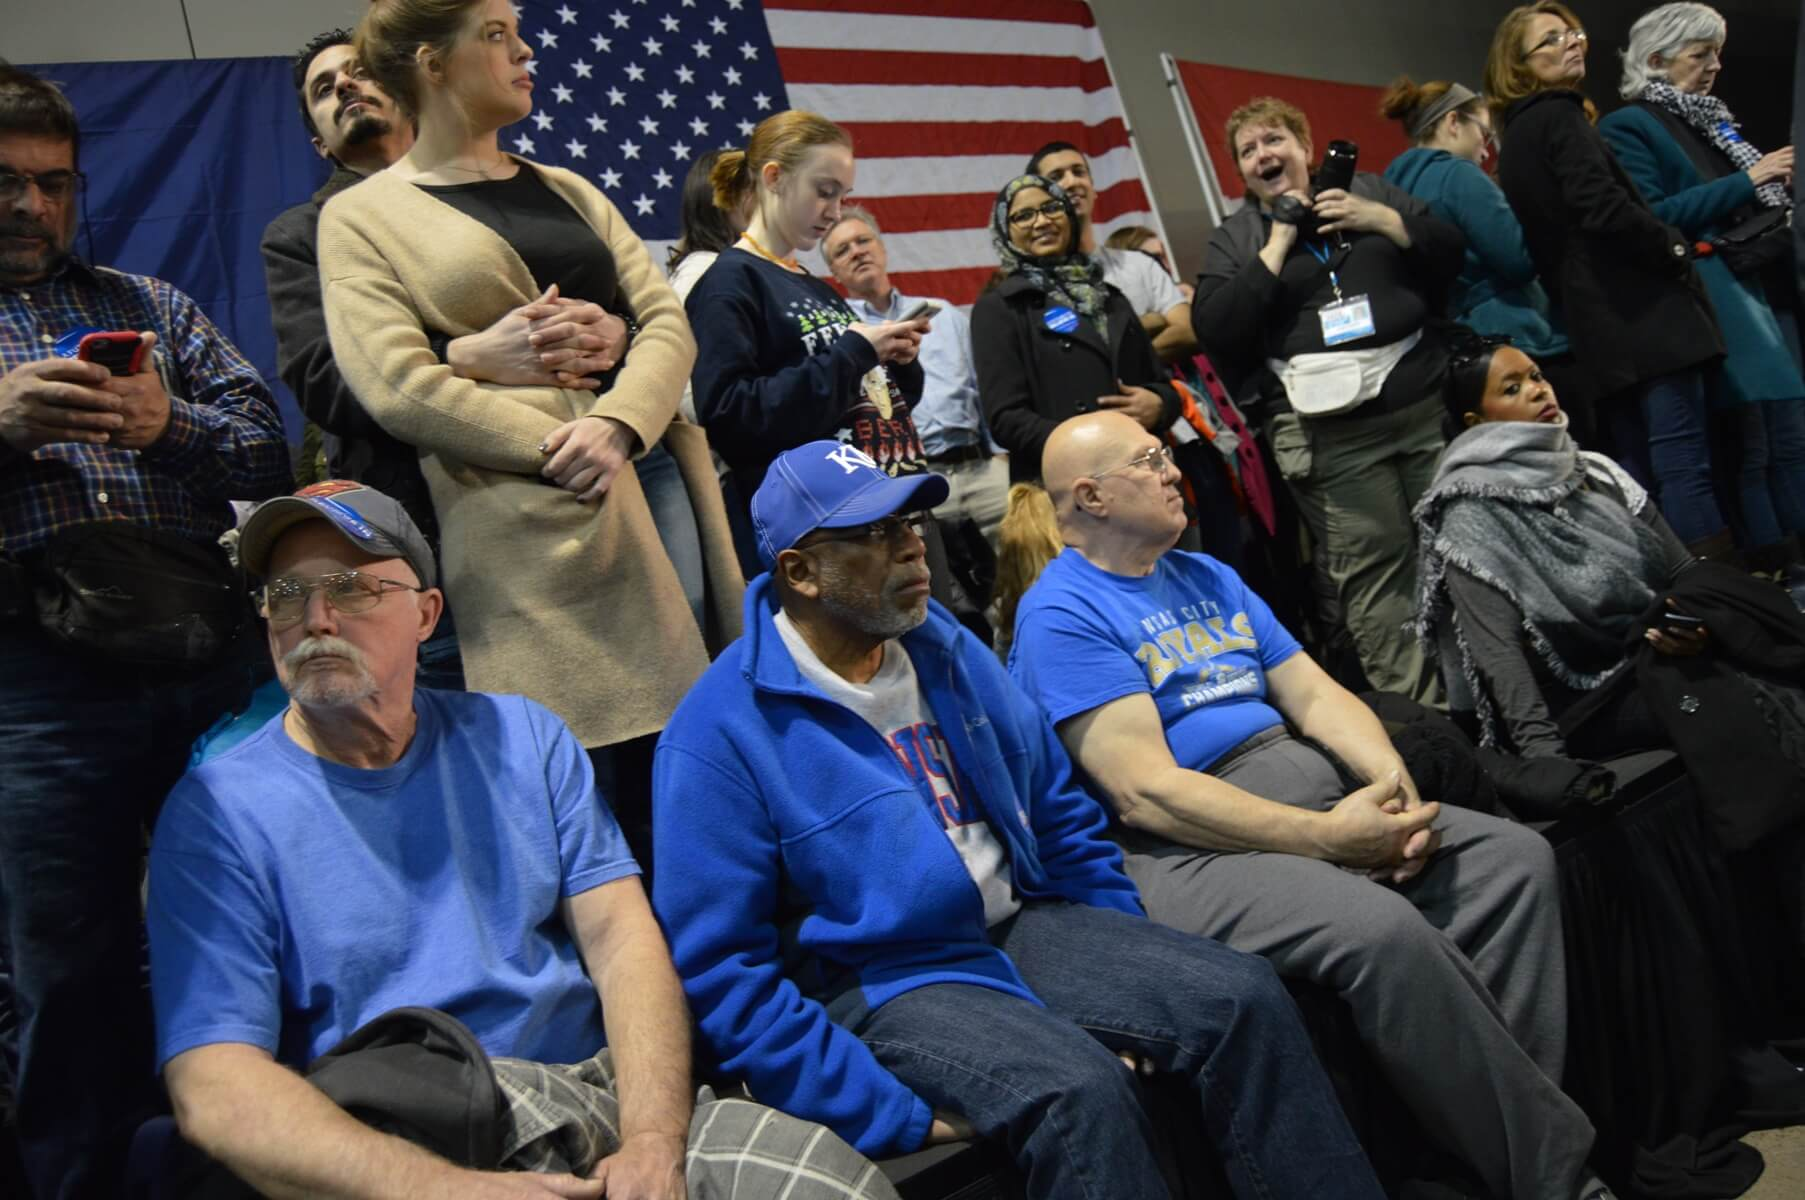 Sanders supporters await his appearance at a rally in Kansas City